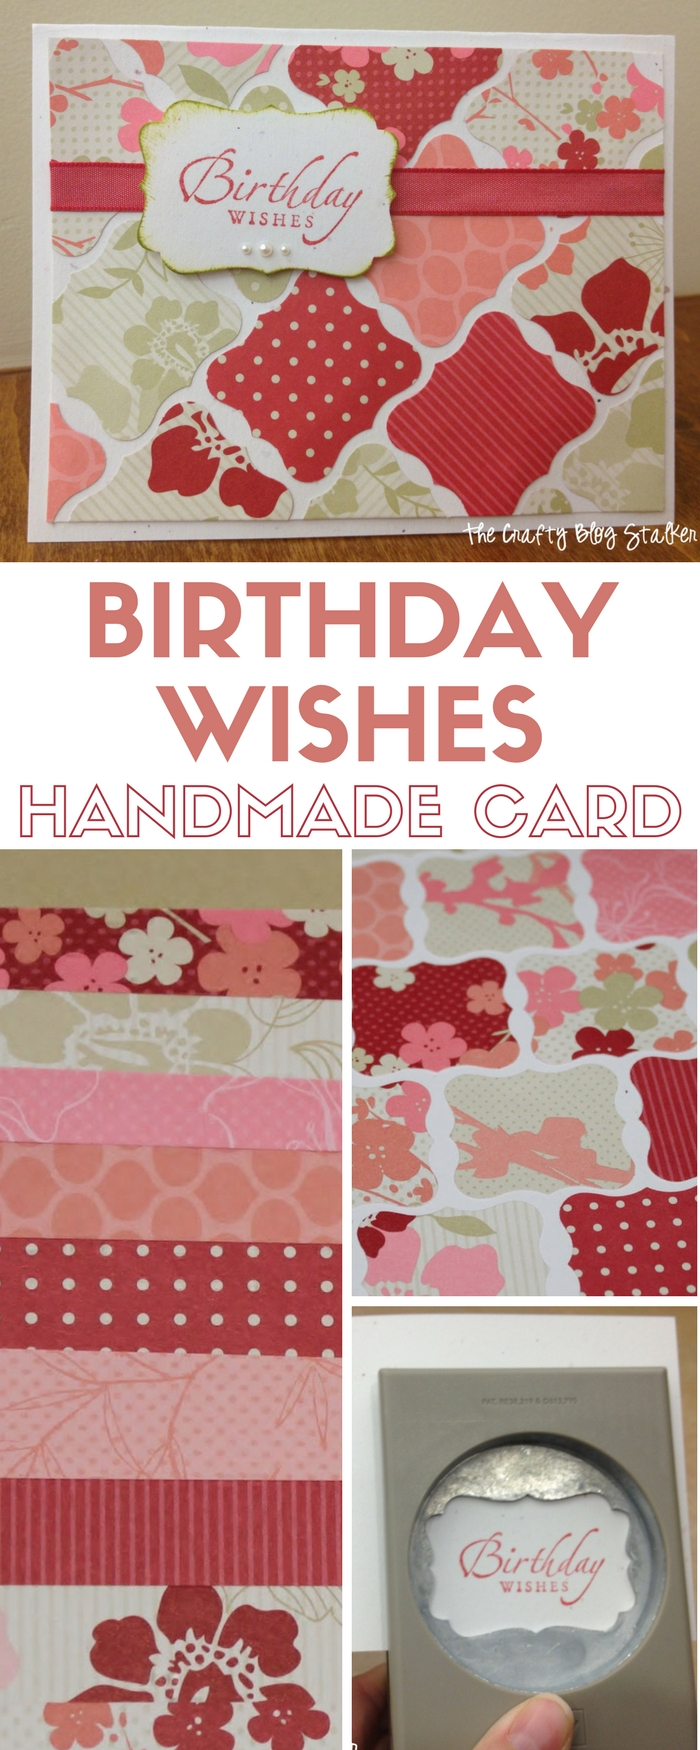 Handmade Birthday Card | Birthday Wishes Card | Patterned Paper | Paper Crafts | DIY